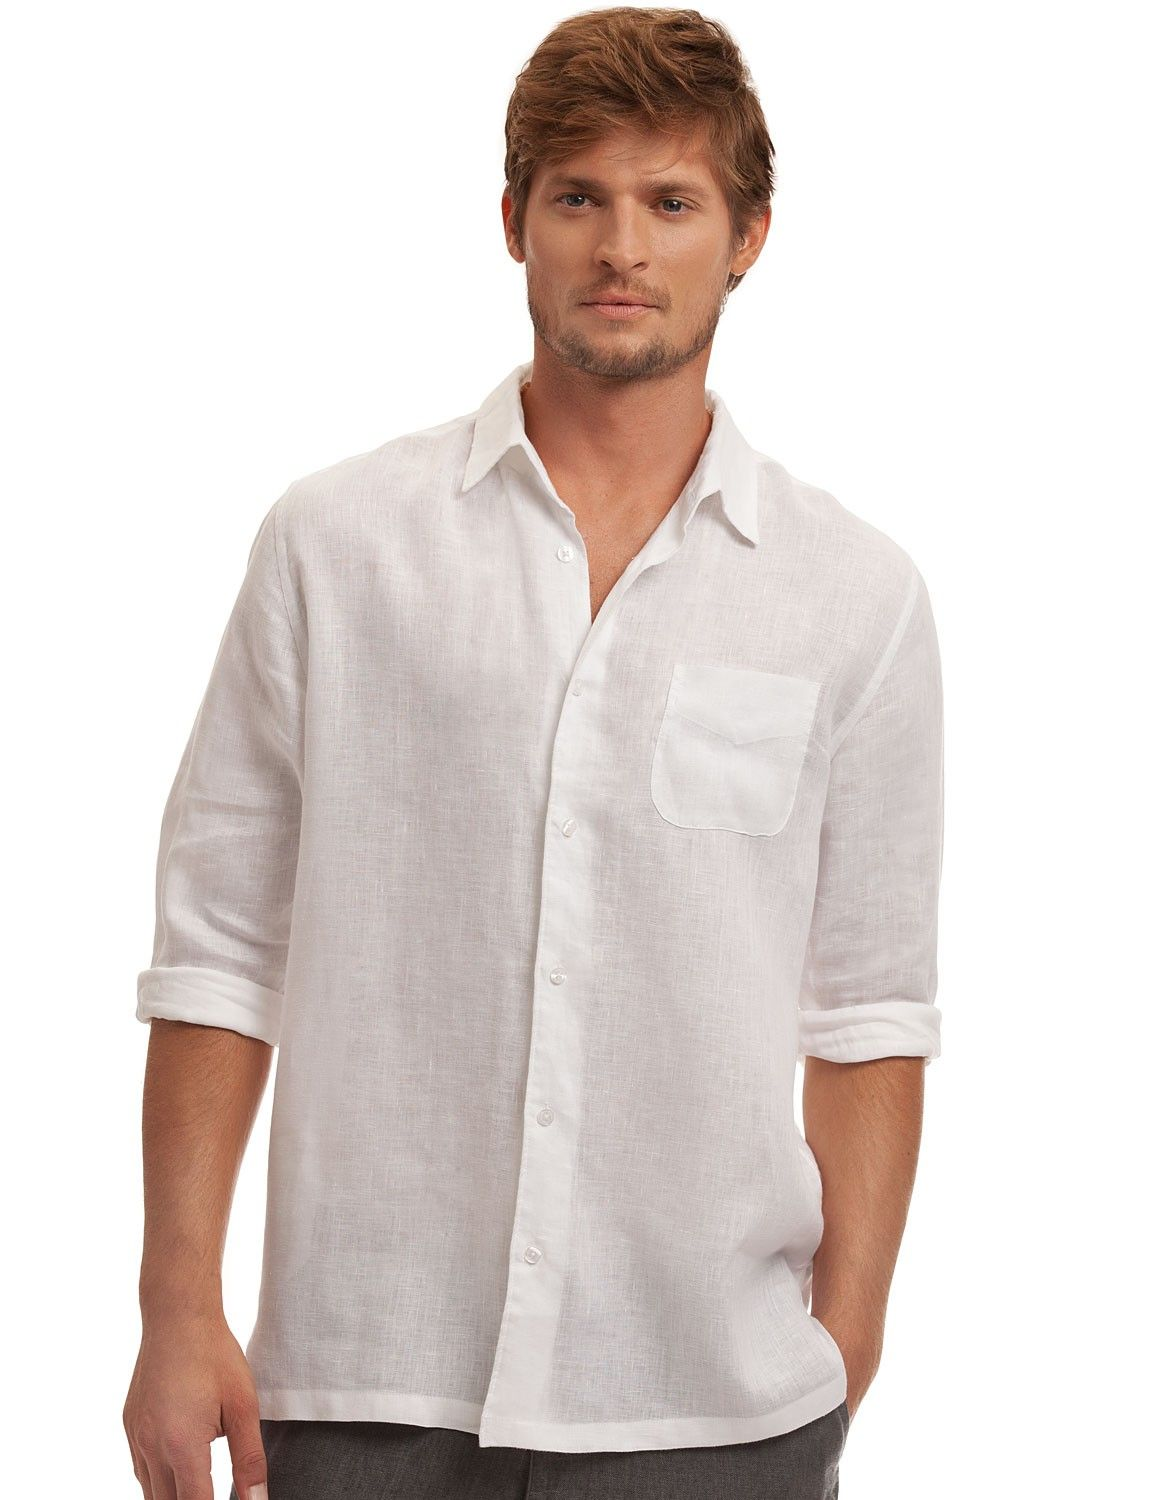 b7a16ab43a38 Our Island Company White Classic Linen Shirt is our most timeless piece.  This white linen shirt is soft and lightweight for any occasion.